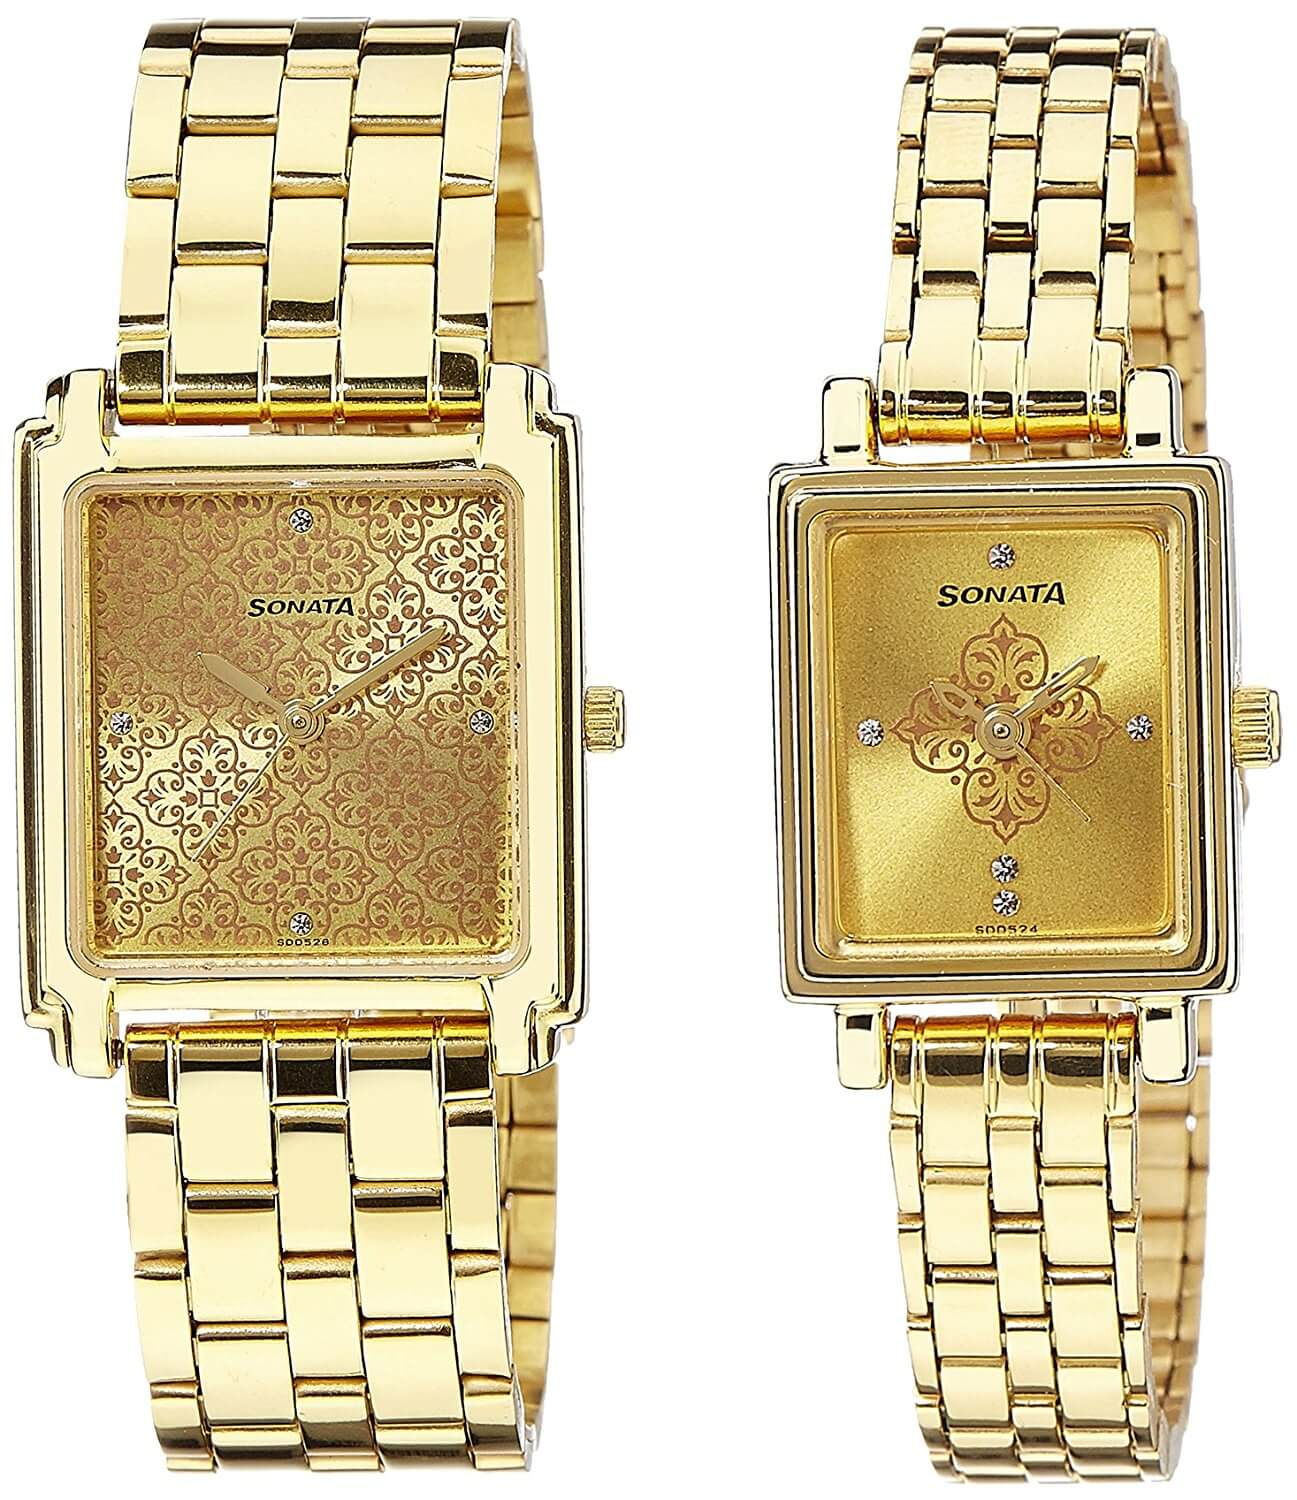 Sonata Analog Champagne Dial Couple's Watch – 70538080YM01